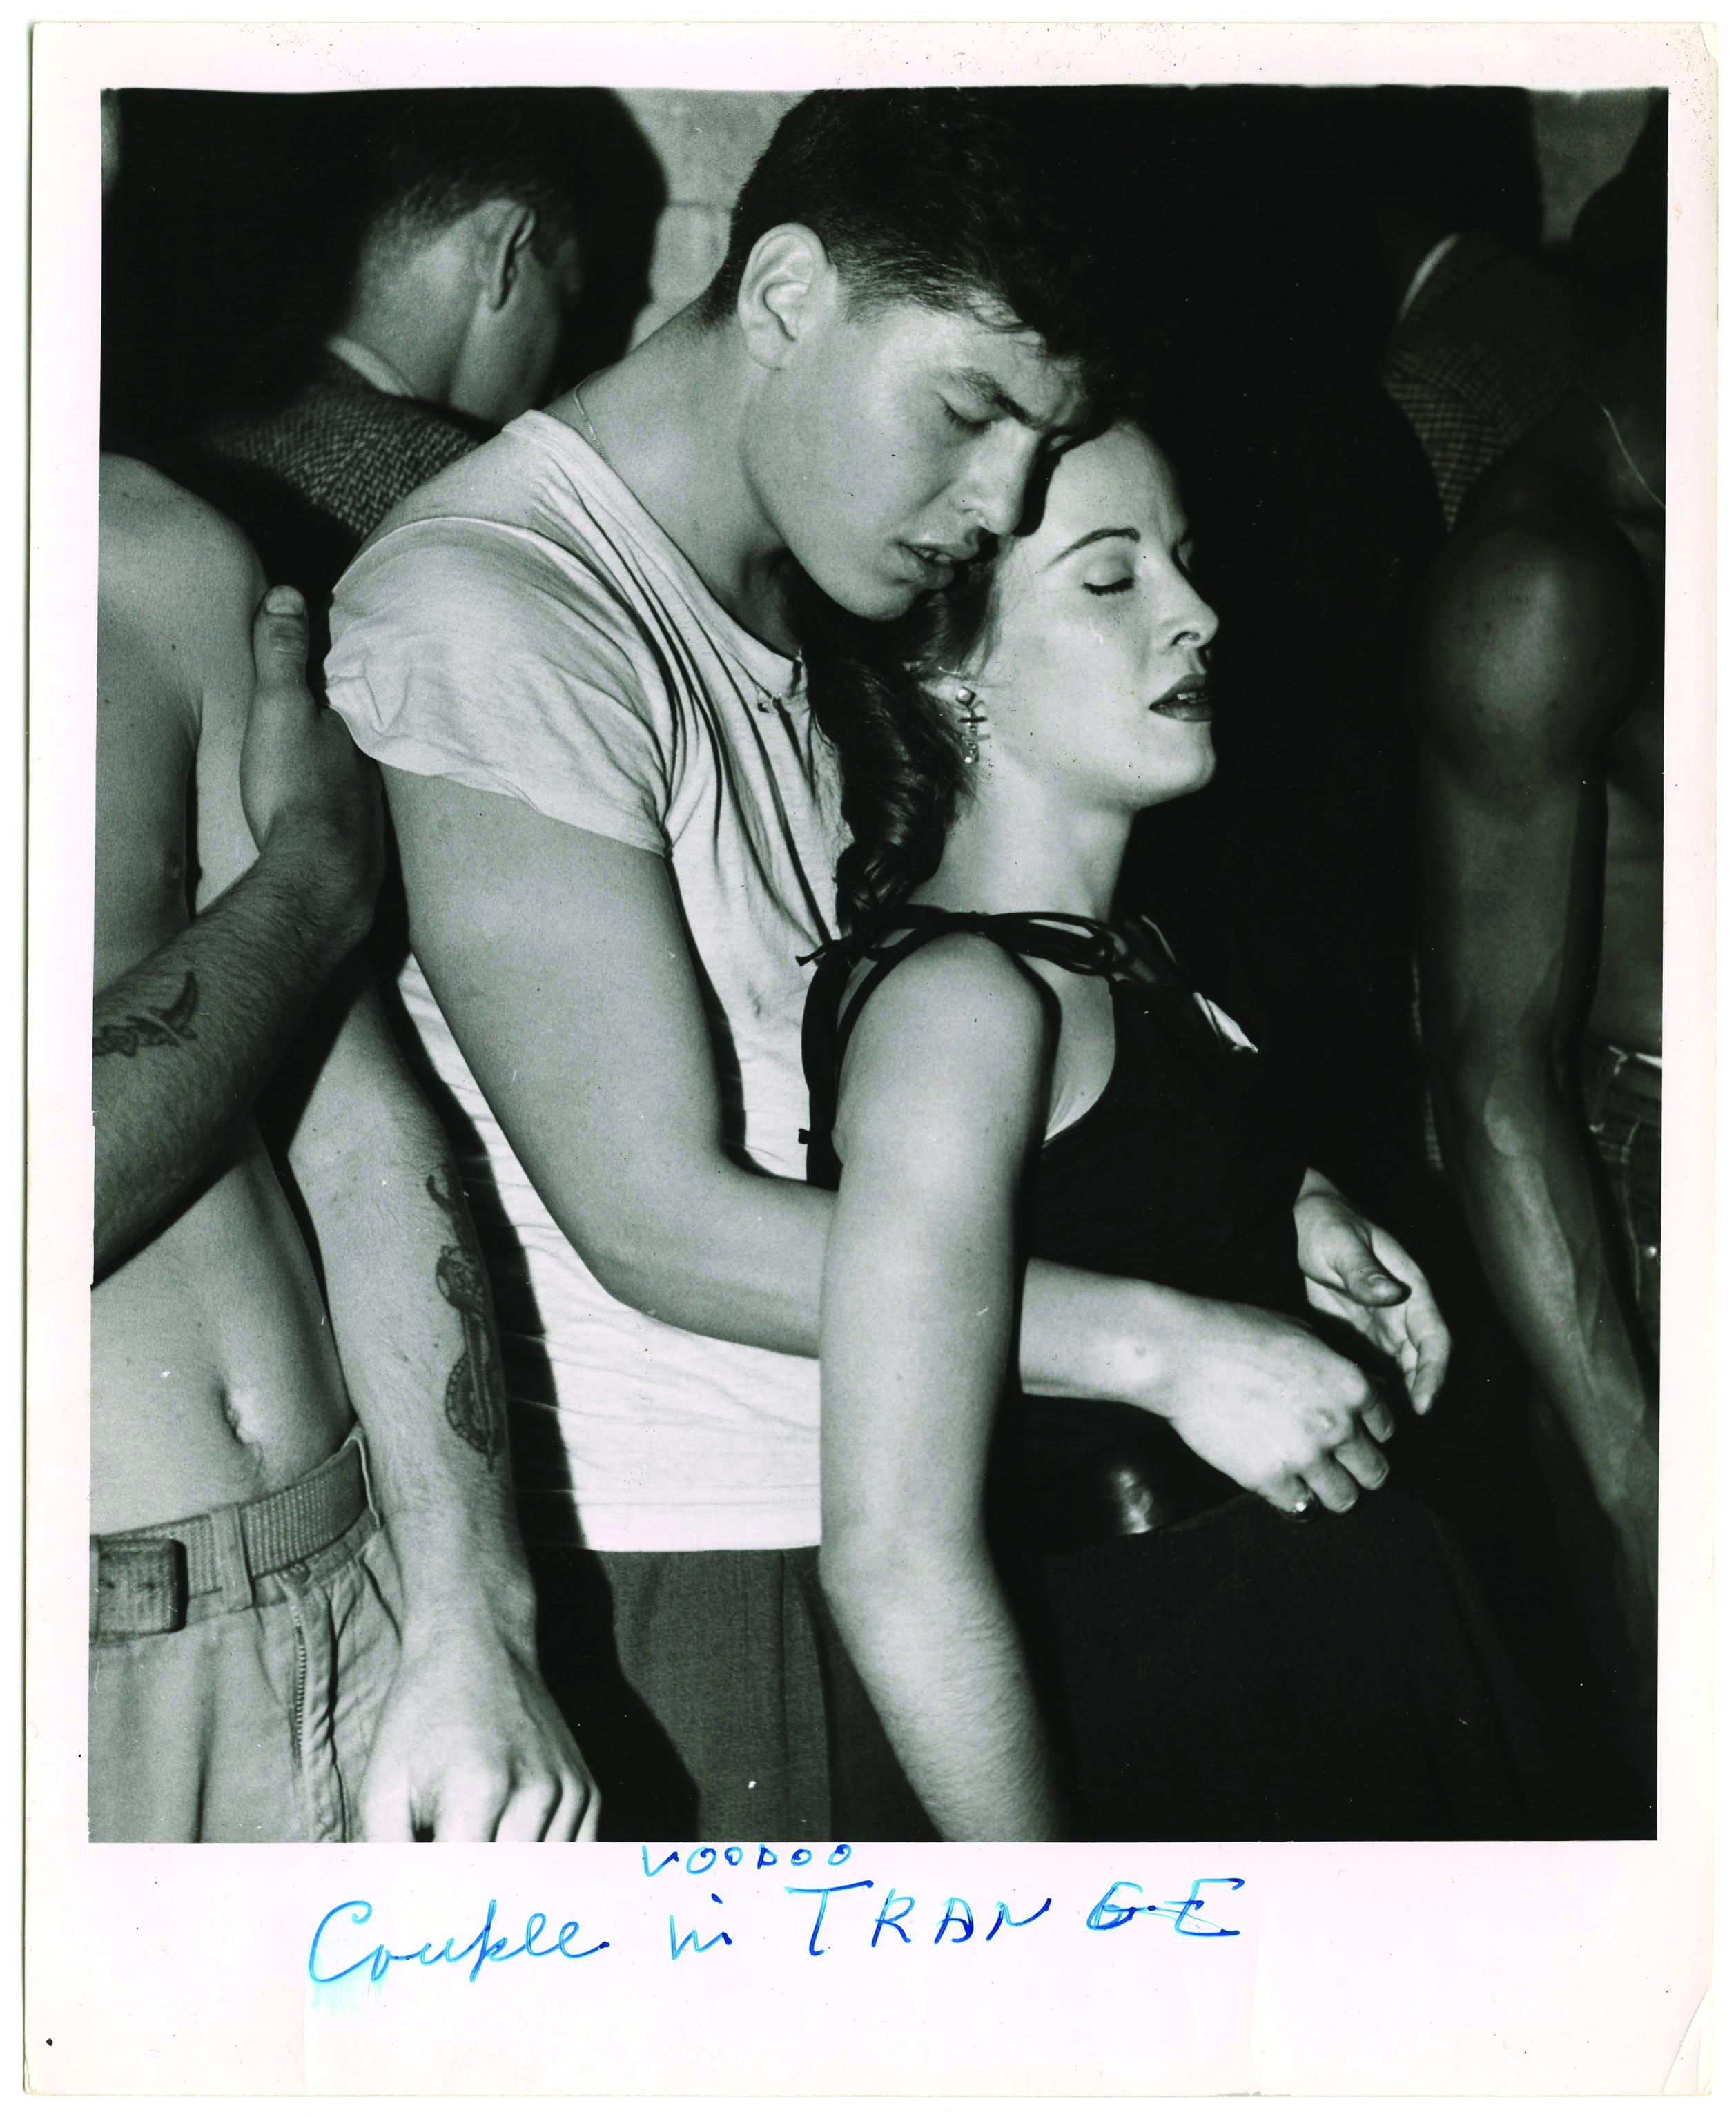 Weegee, Couple in Voodoo Trance, ca. 1956 © Weegee / International Center of Photography